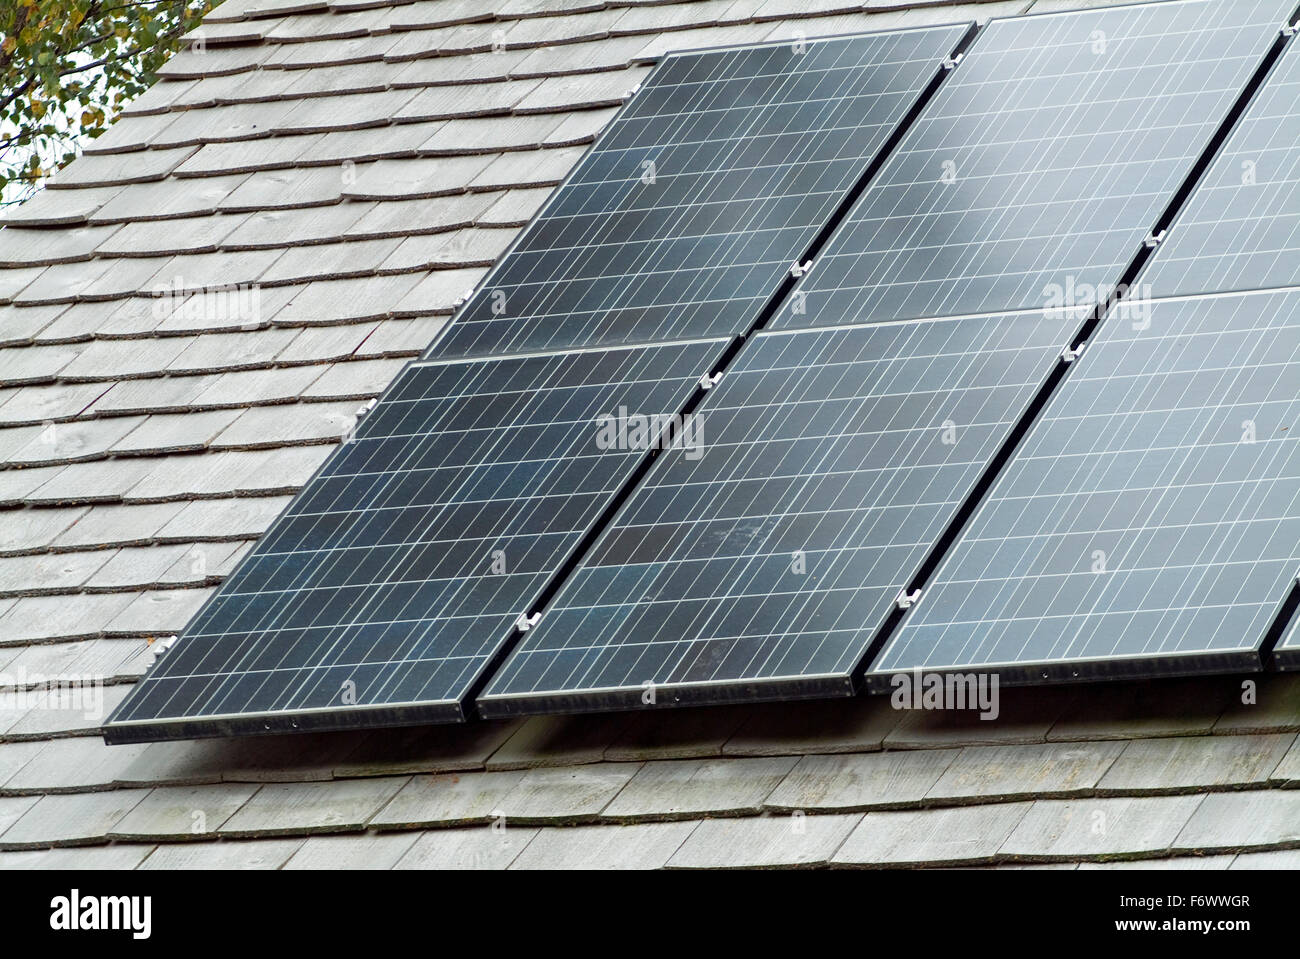 Photovoltaic Station on a roof - Stock Image